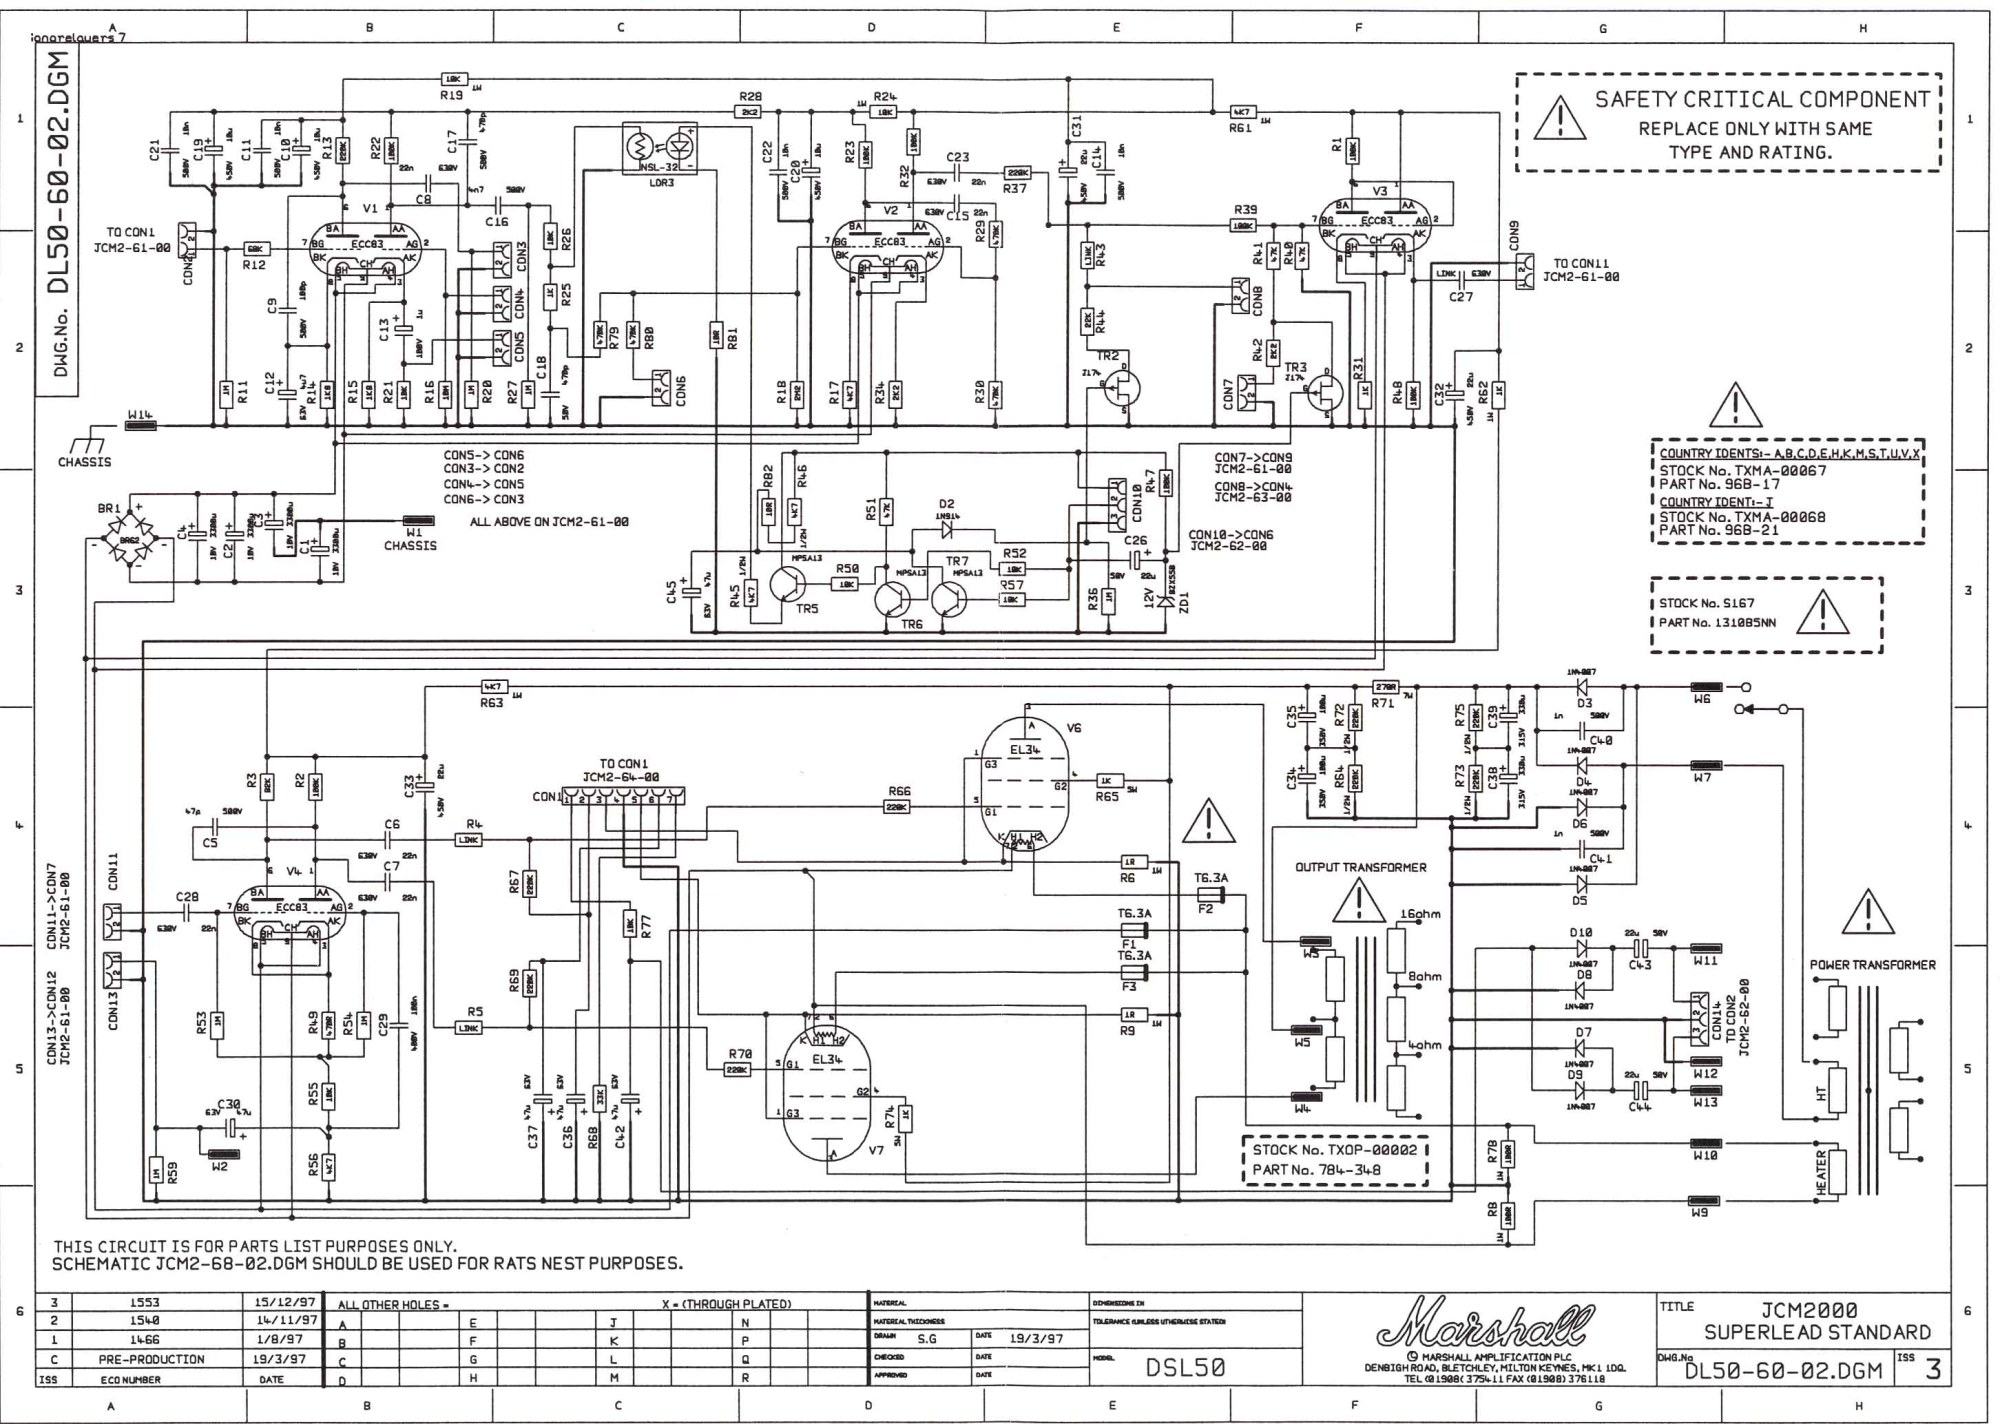 hight resolution of marshall amp schematics www thetubestore com 6x4 vacuum tube pin diagram free download wiring diagram schematic